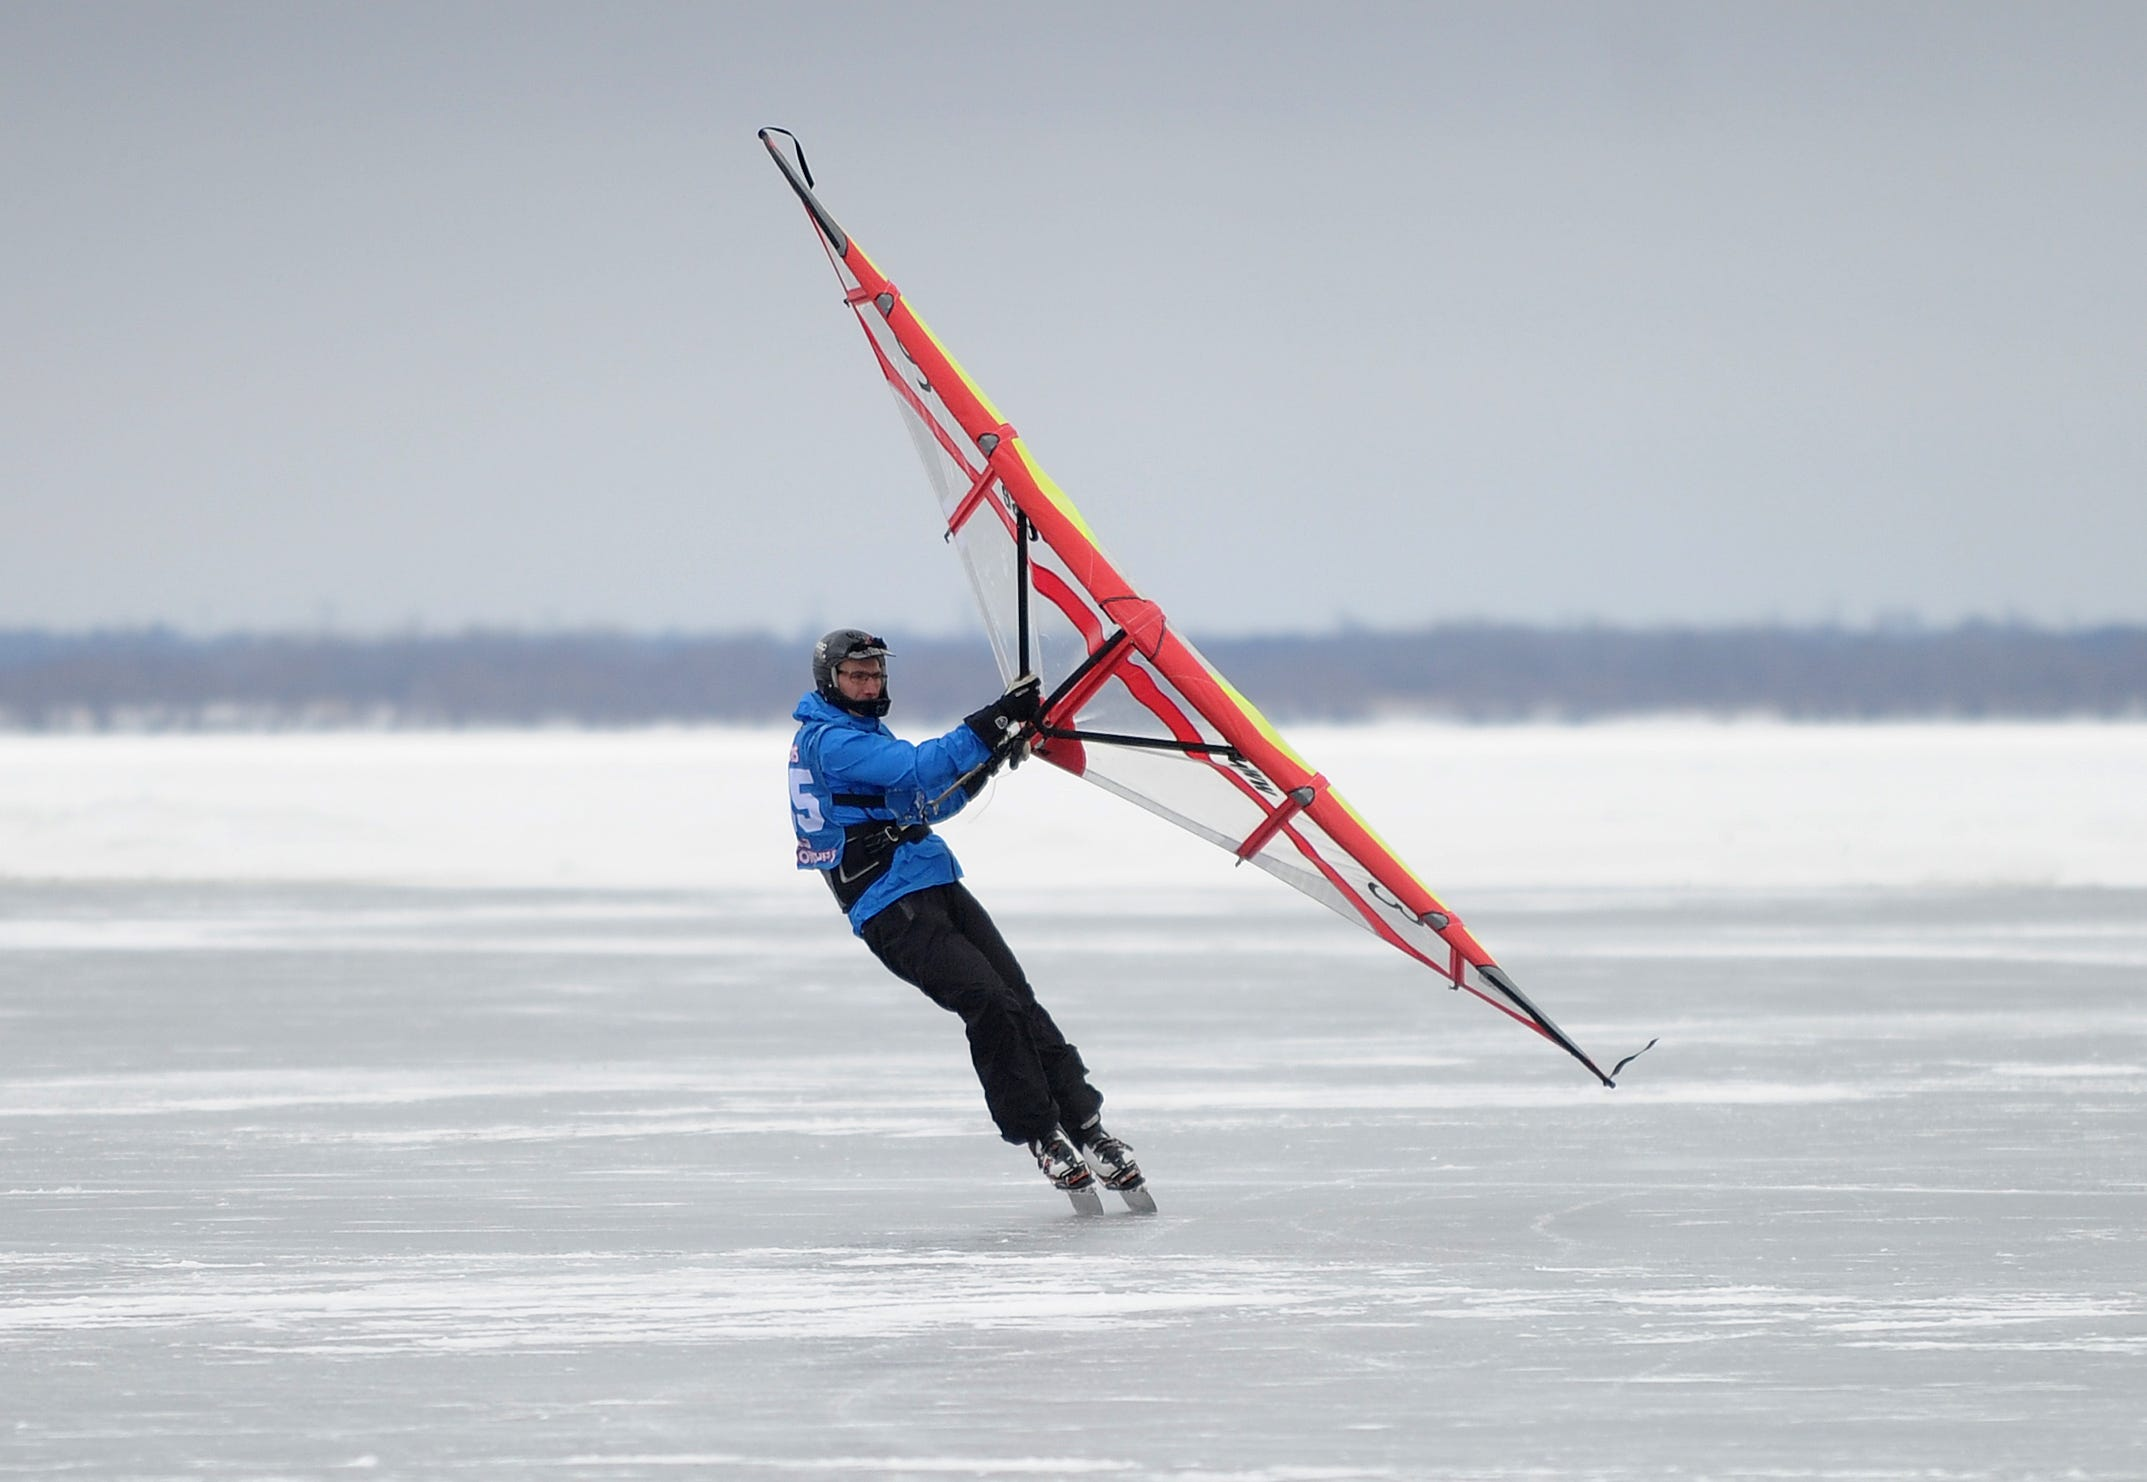 Racers from several countries meet in Fond du Lac for the World Ice and Snow Sailing Championships.